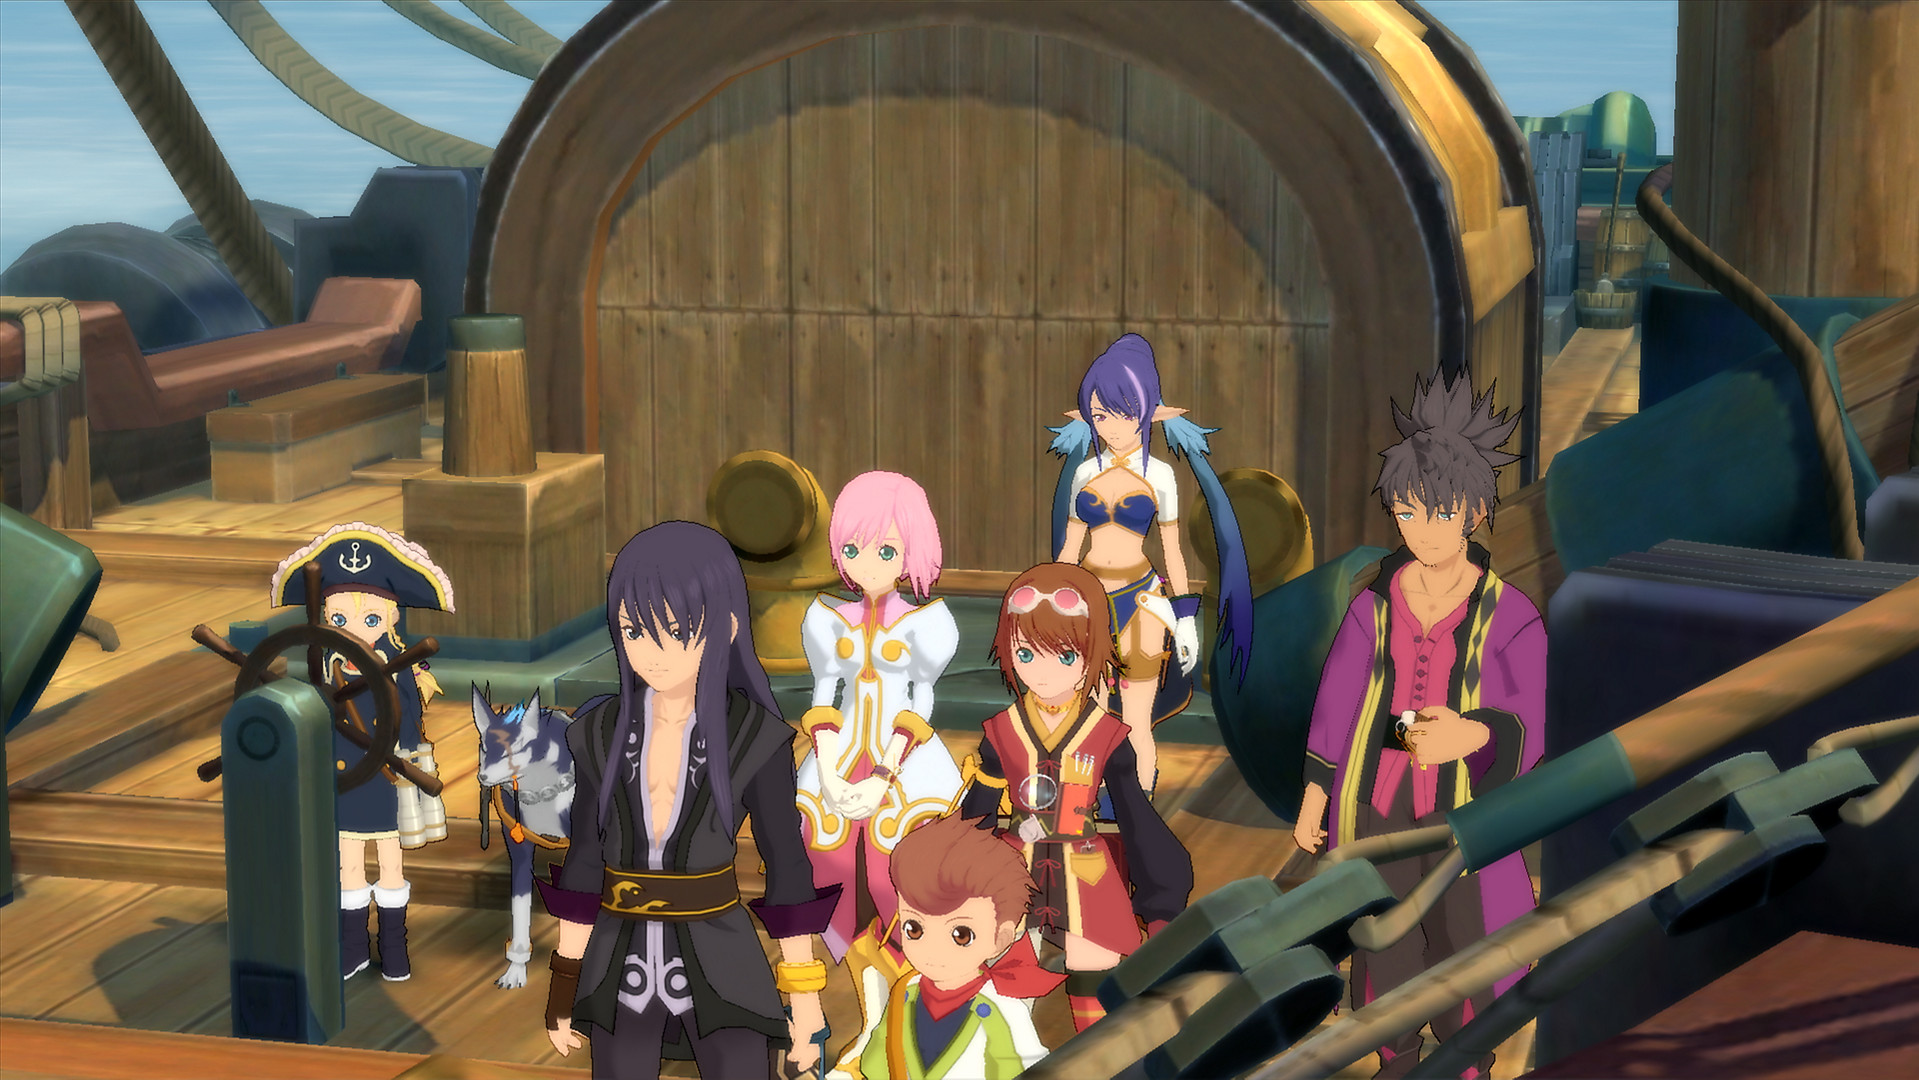 tales-of-vesperia-screen-01-ps4-us-11jun